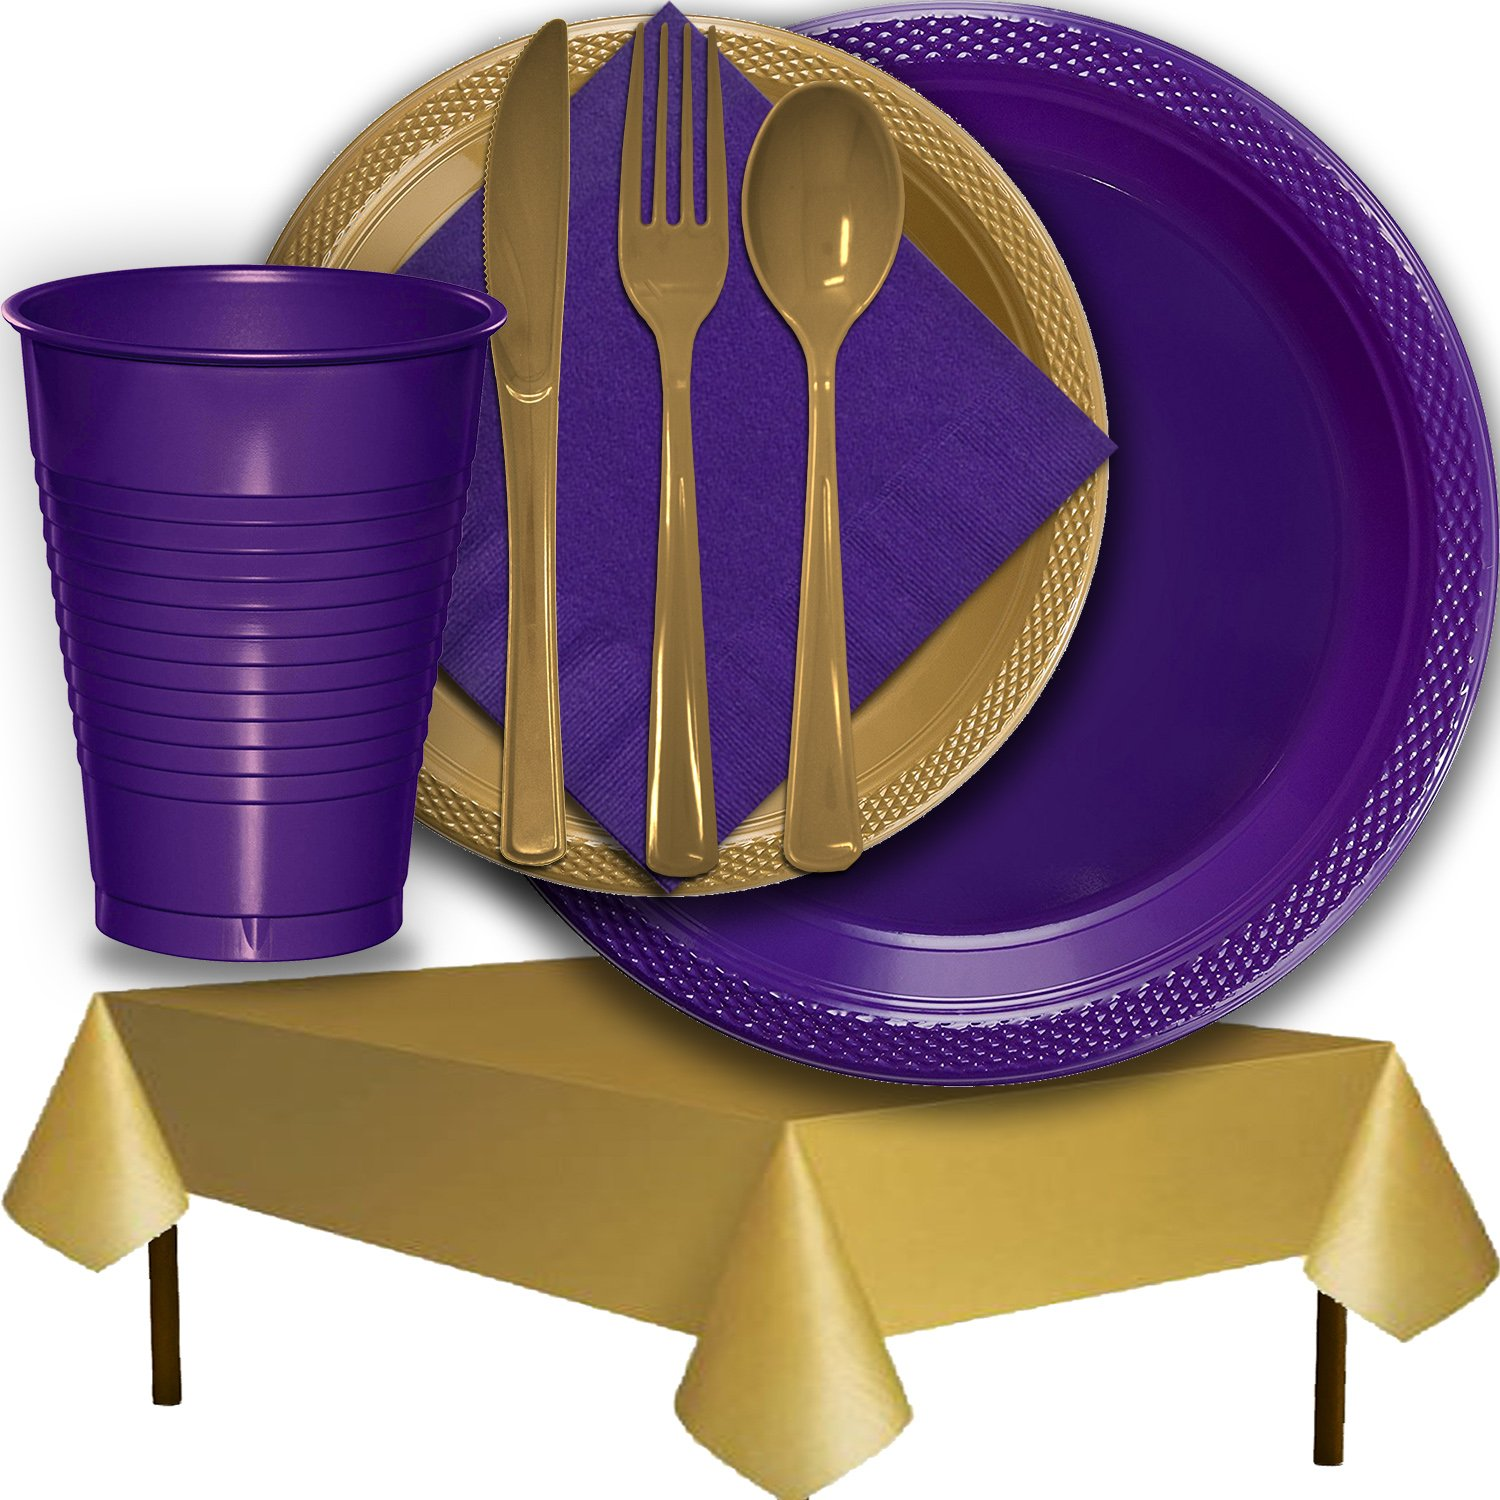 Plastic Party Supplies for 50 Guests - Purple and Gold - Dinner Plates, Dessert Plates, Cups, Lunch Napkins, Cutlery, and Tablecloths - Premium Quality Tableware Set